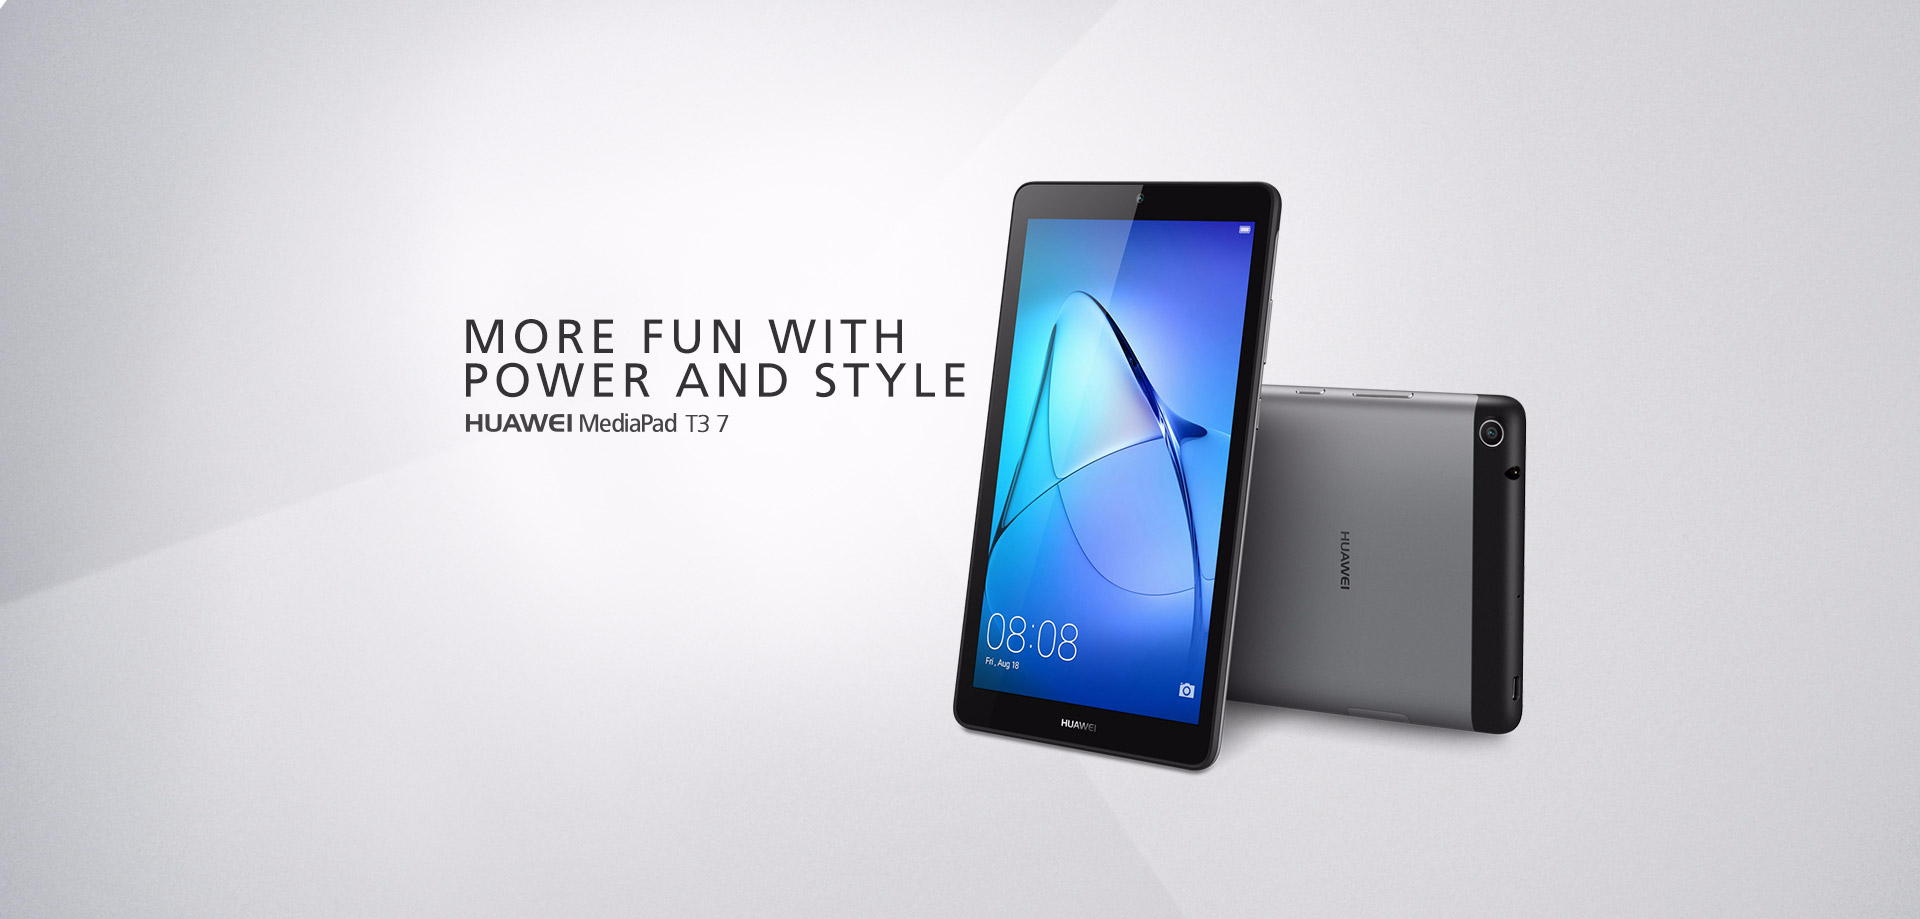 Huawei MediaPad T3 Android Tablet Launched With Entry